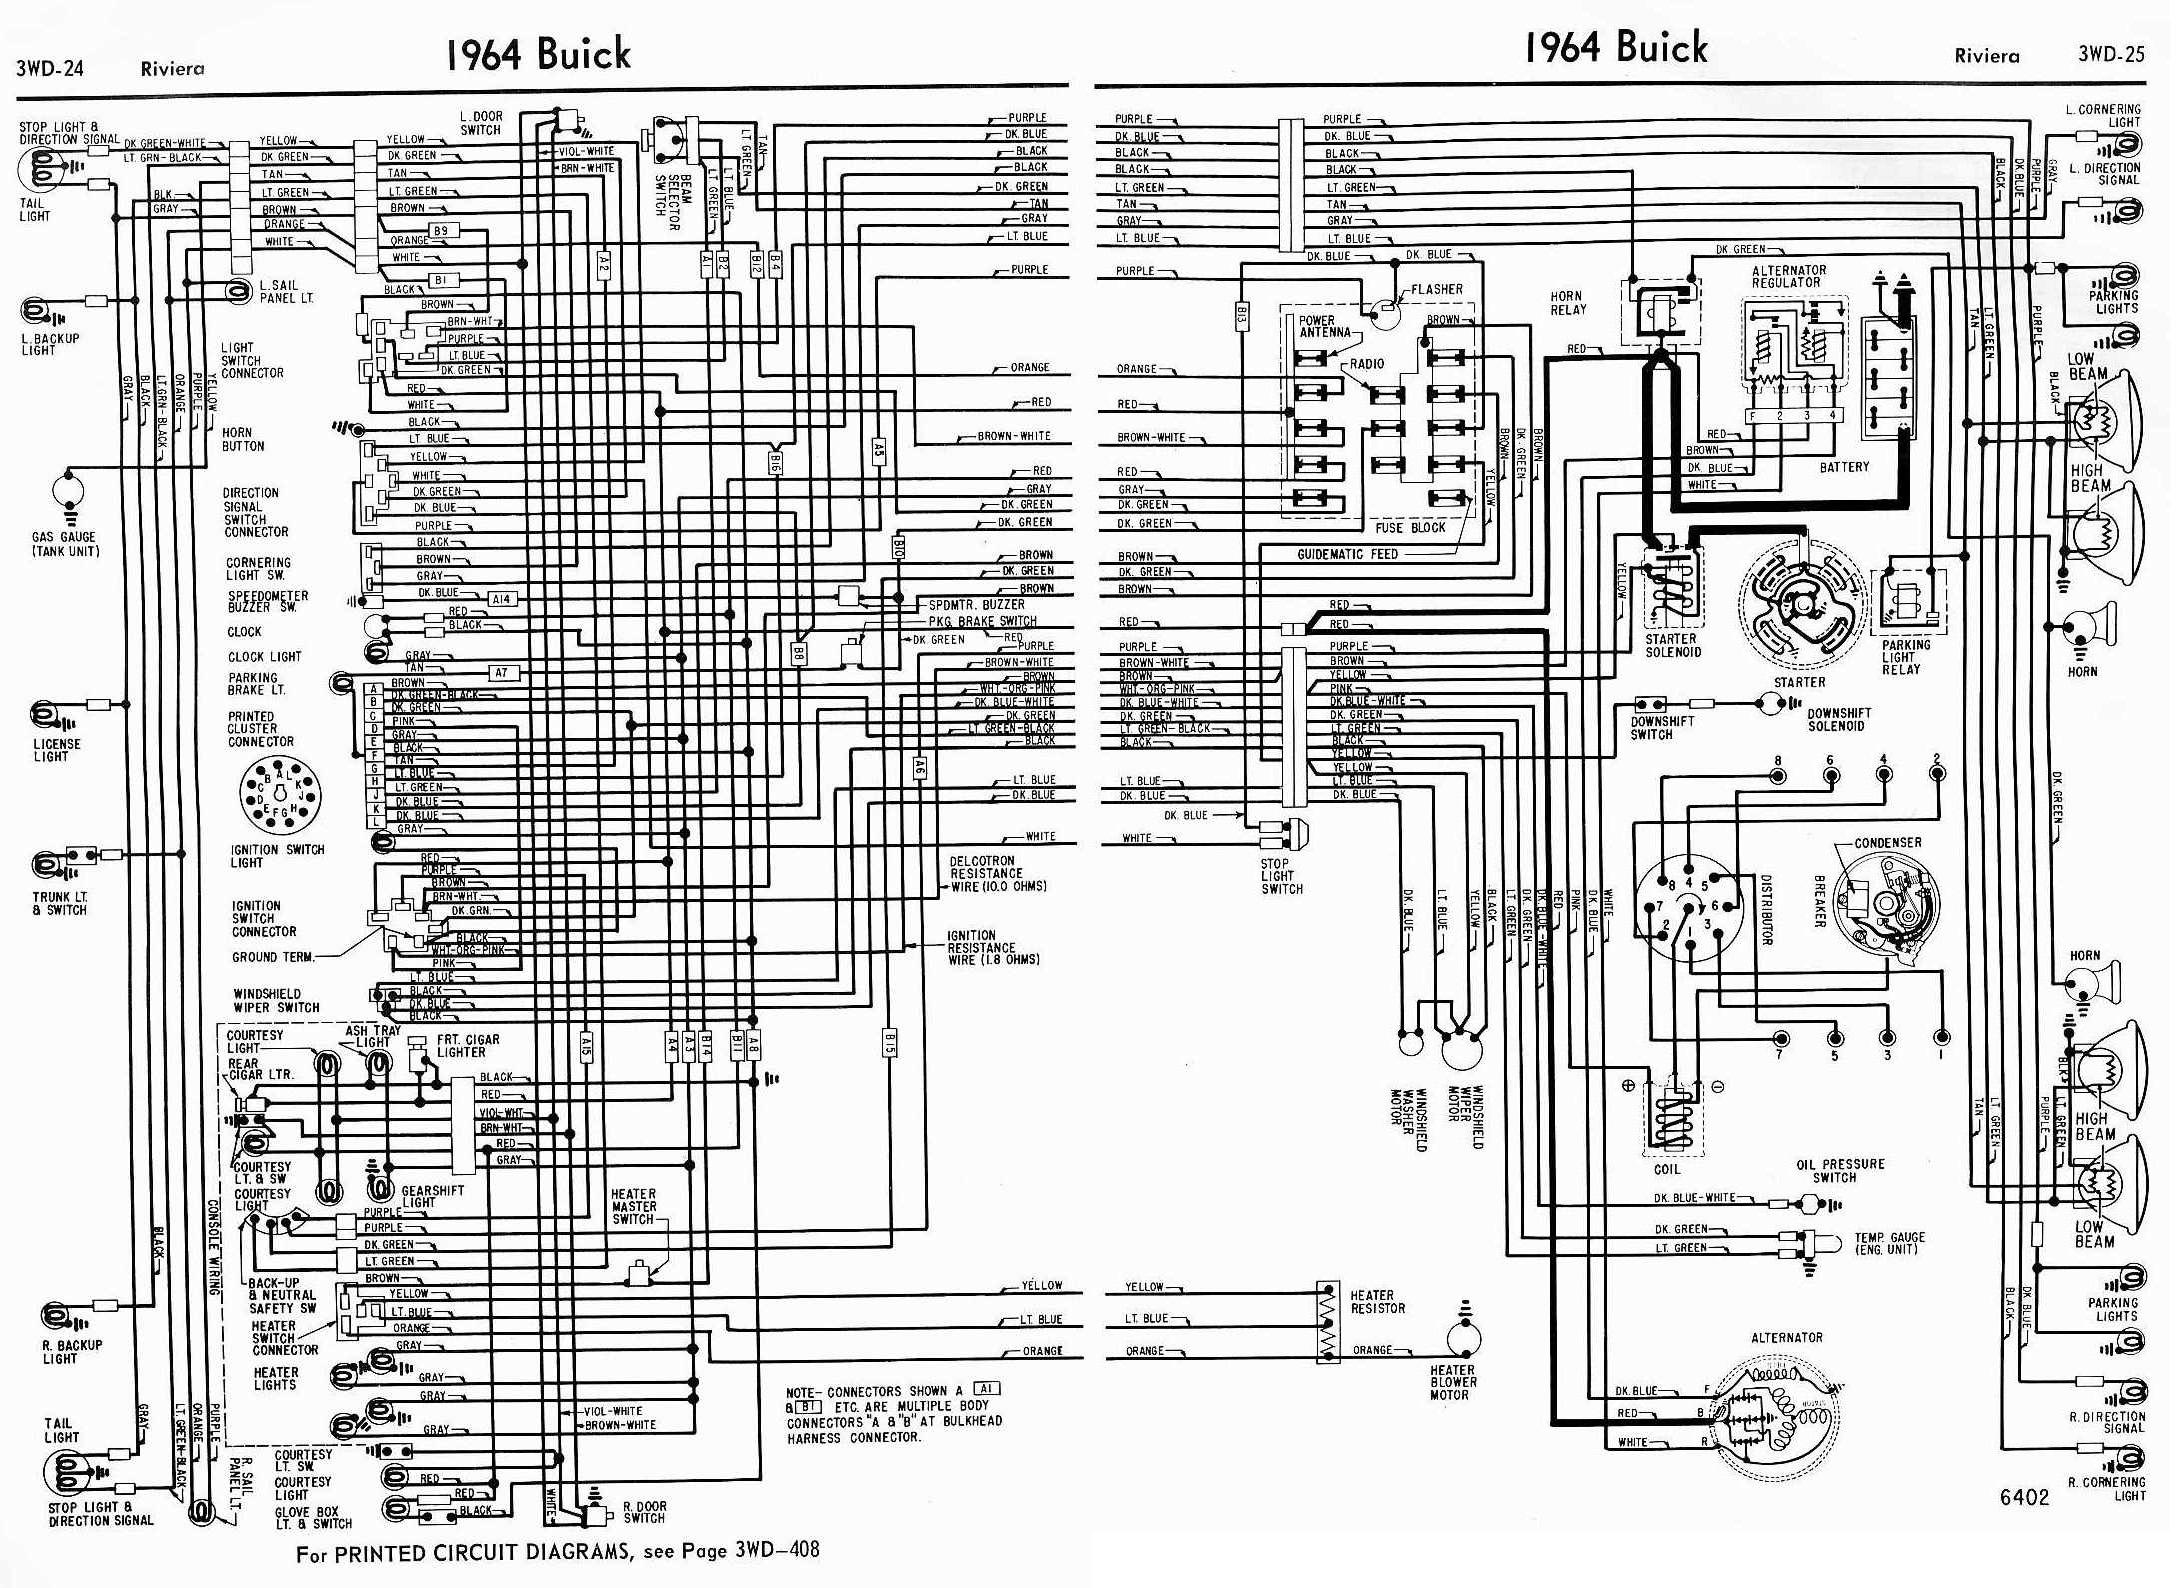 1972 skylark wiring diagram bookmark about wiring diagram Skylark Buick 1972 Dashwiring-Diagram